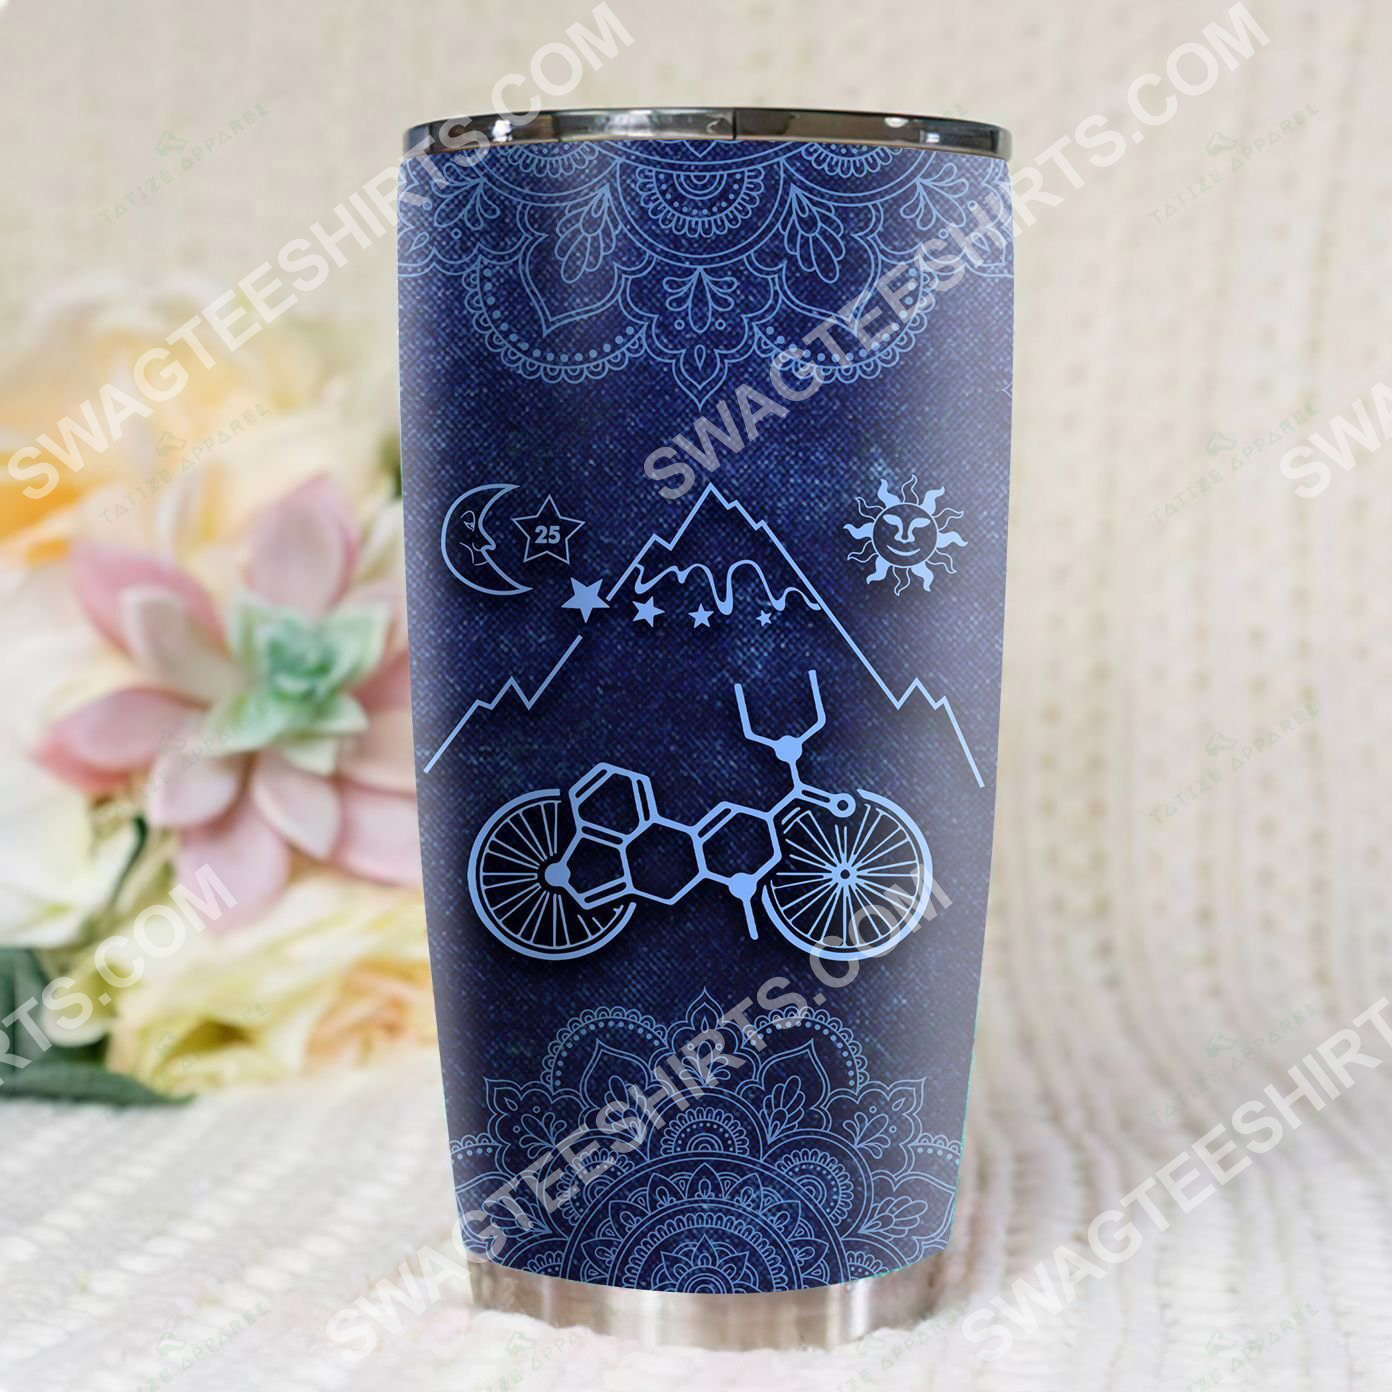 mandala lsd bicycle all over printed stainless steel tumbler 3(1) - Copy